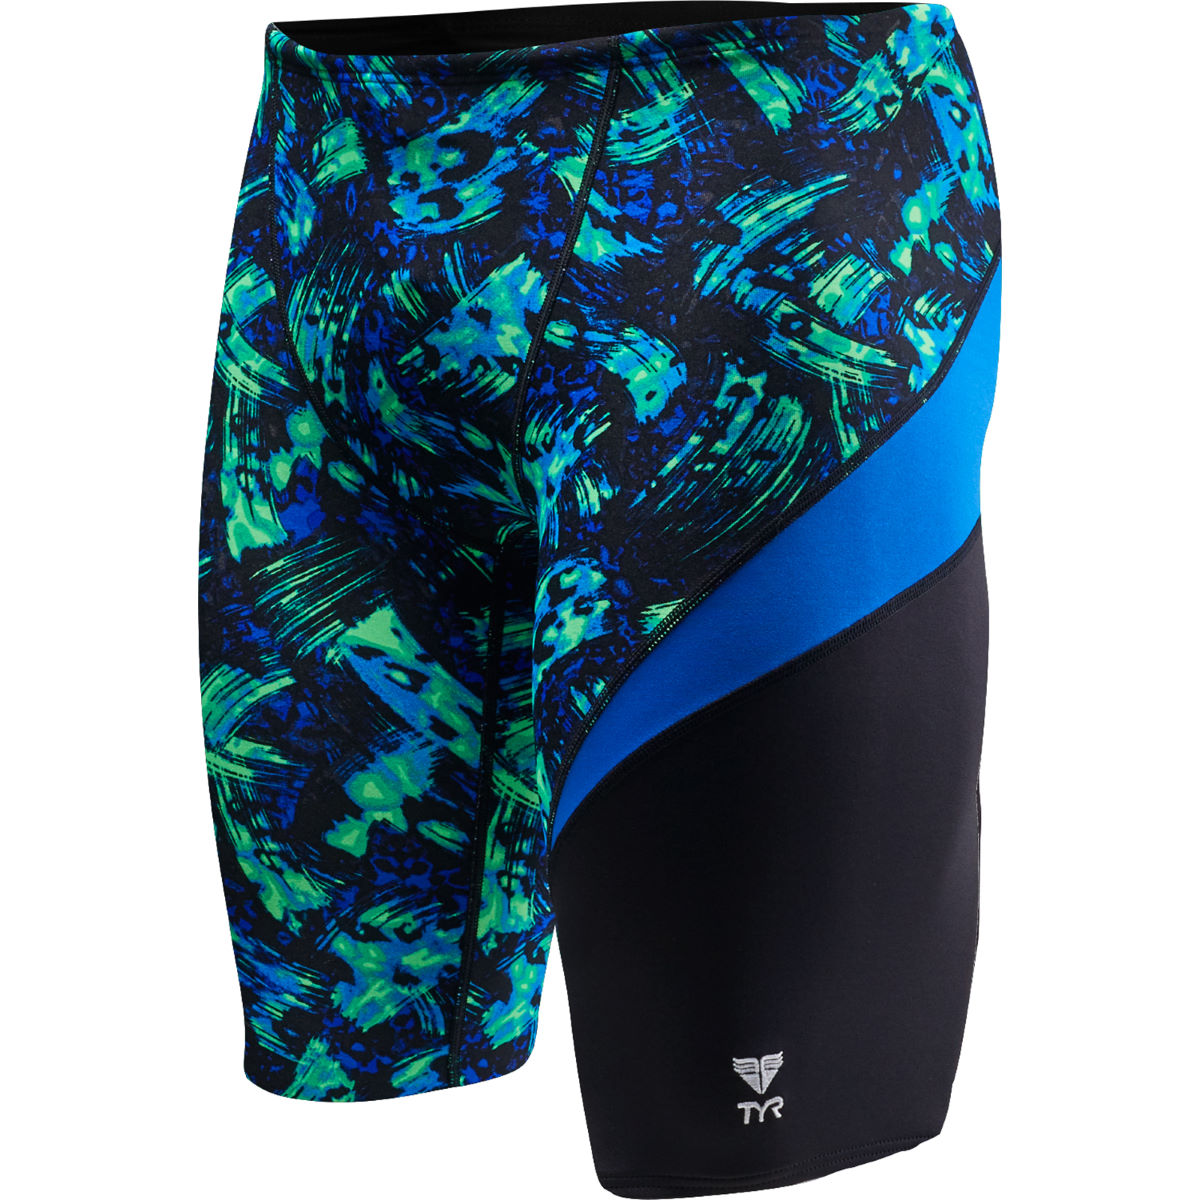 Jammer TYR Emulsion Wave - 26'' Blue/Green Maillots de bain Adulte